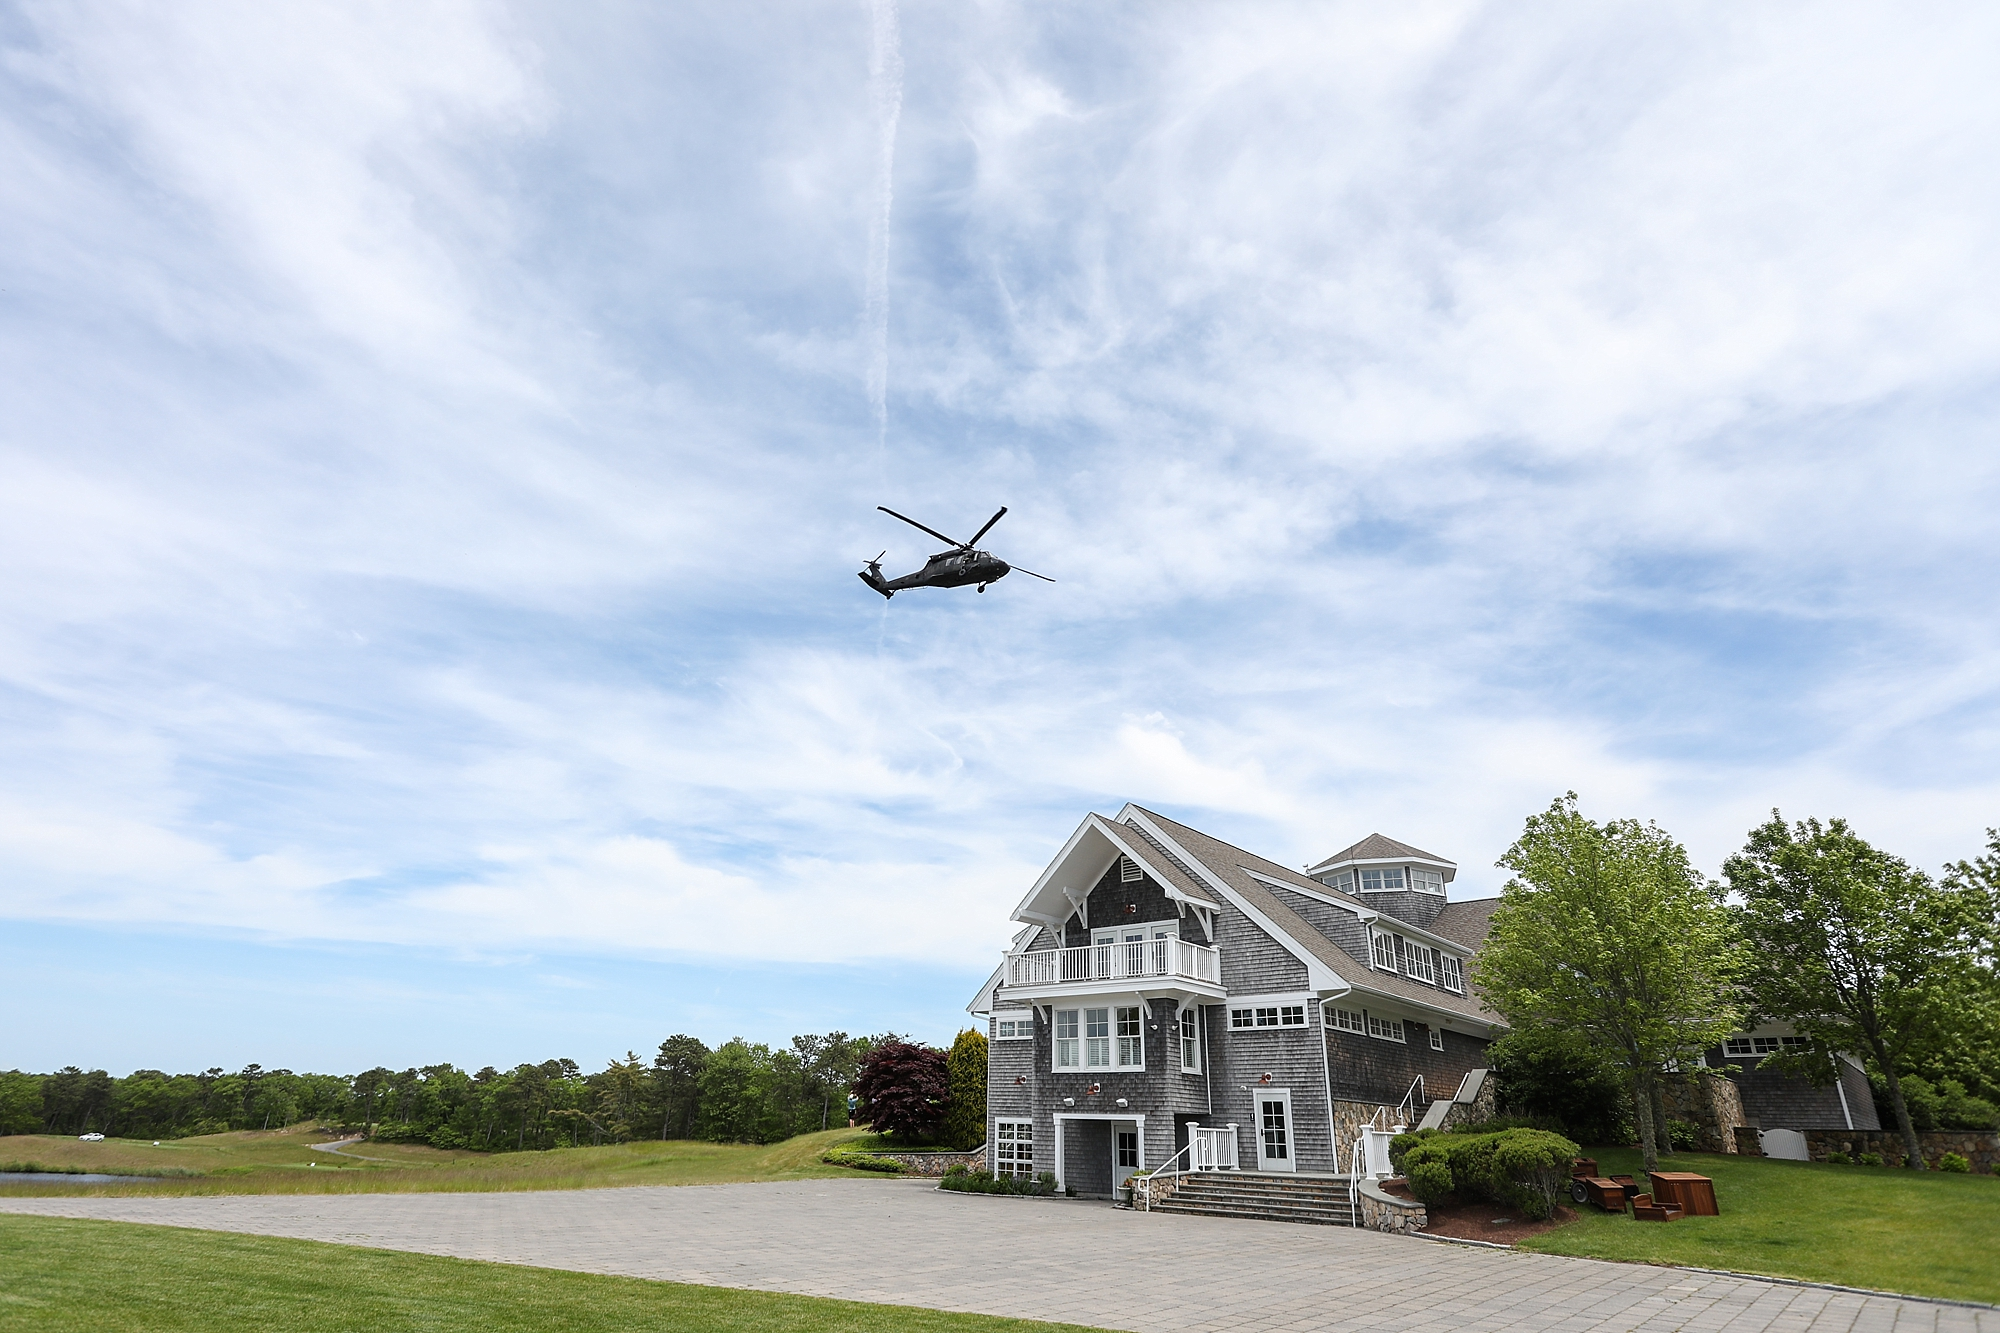 Promptly at 12:30, the Apache crew flew over the TGC at Sacconnesset Clubhouse